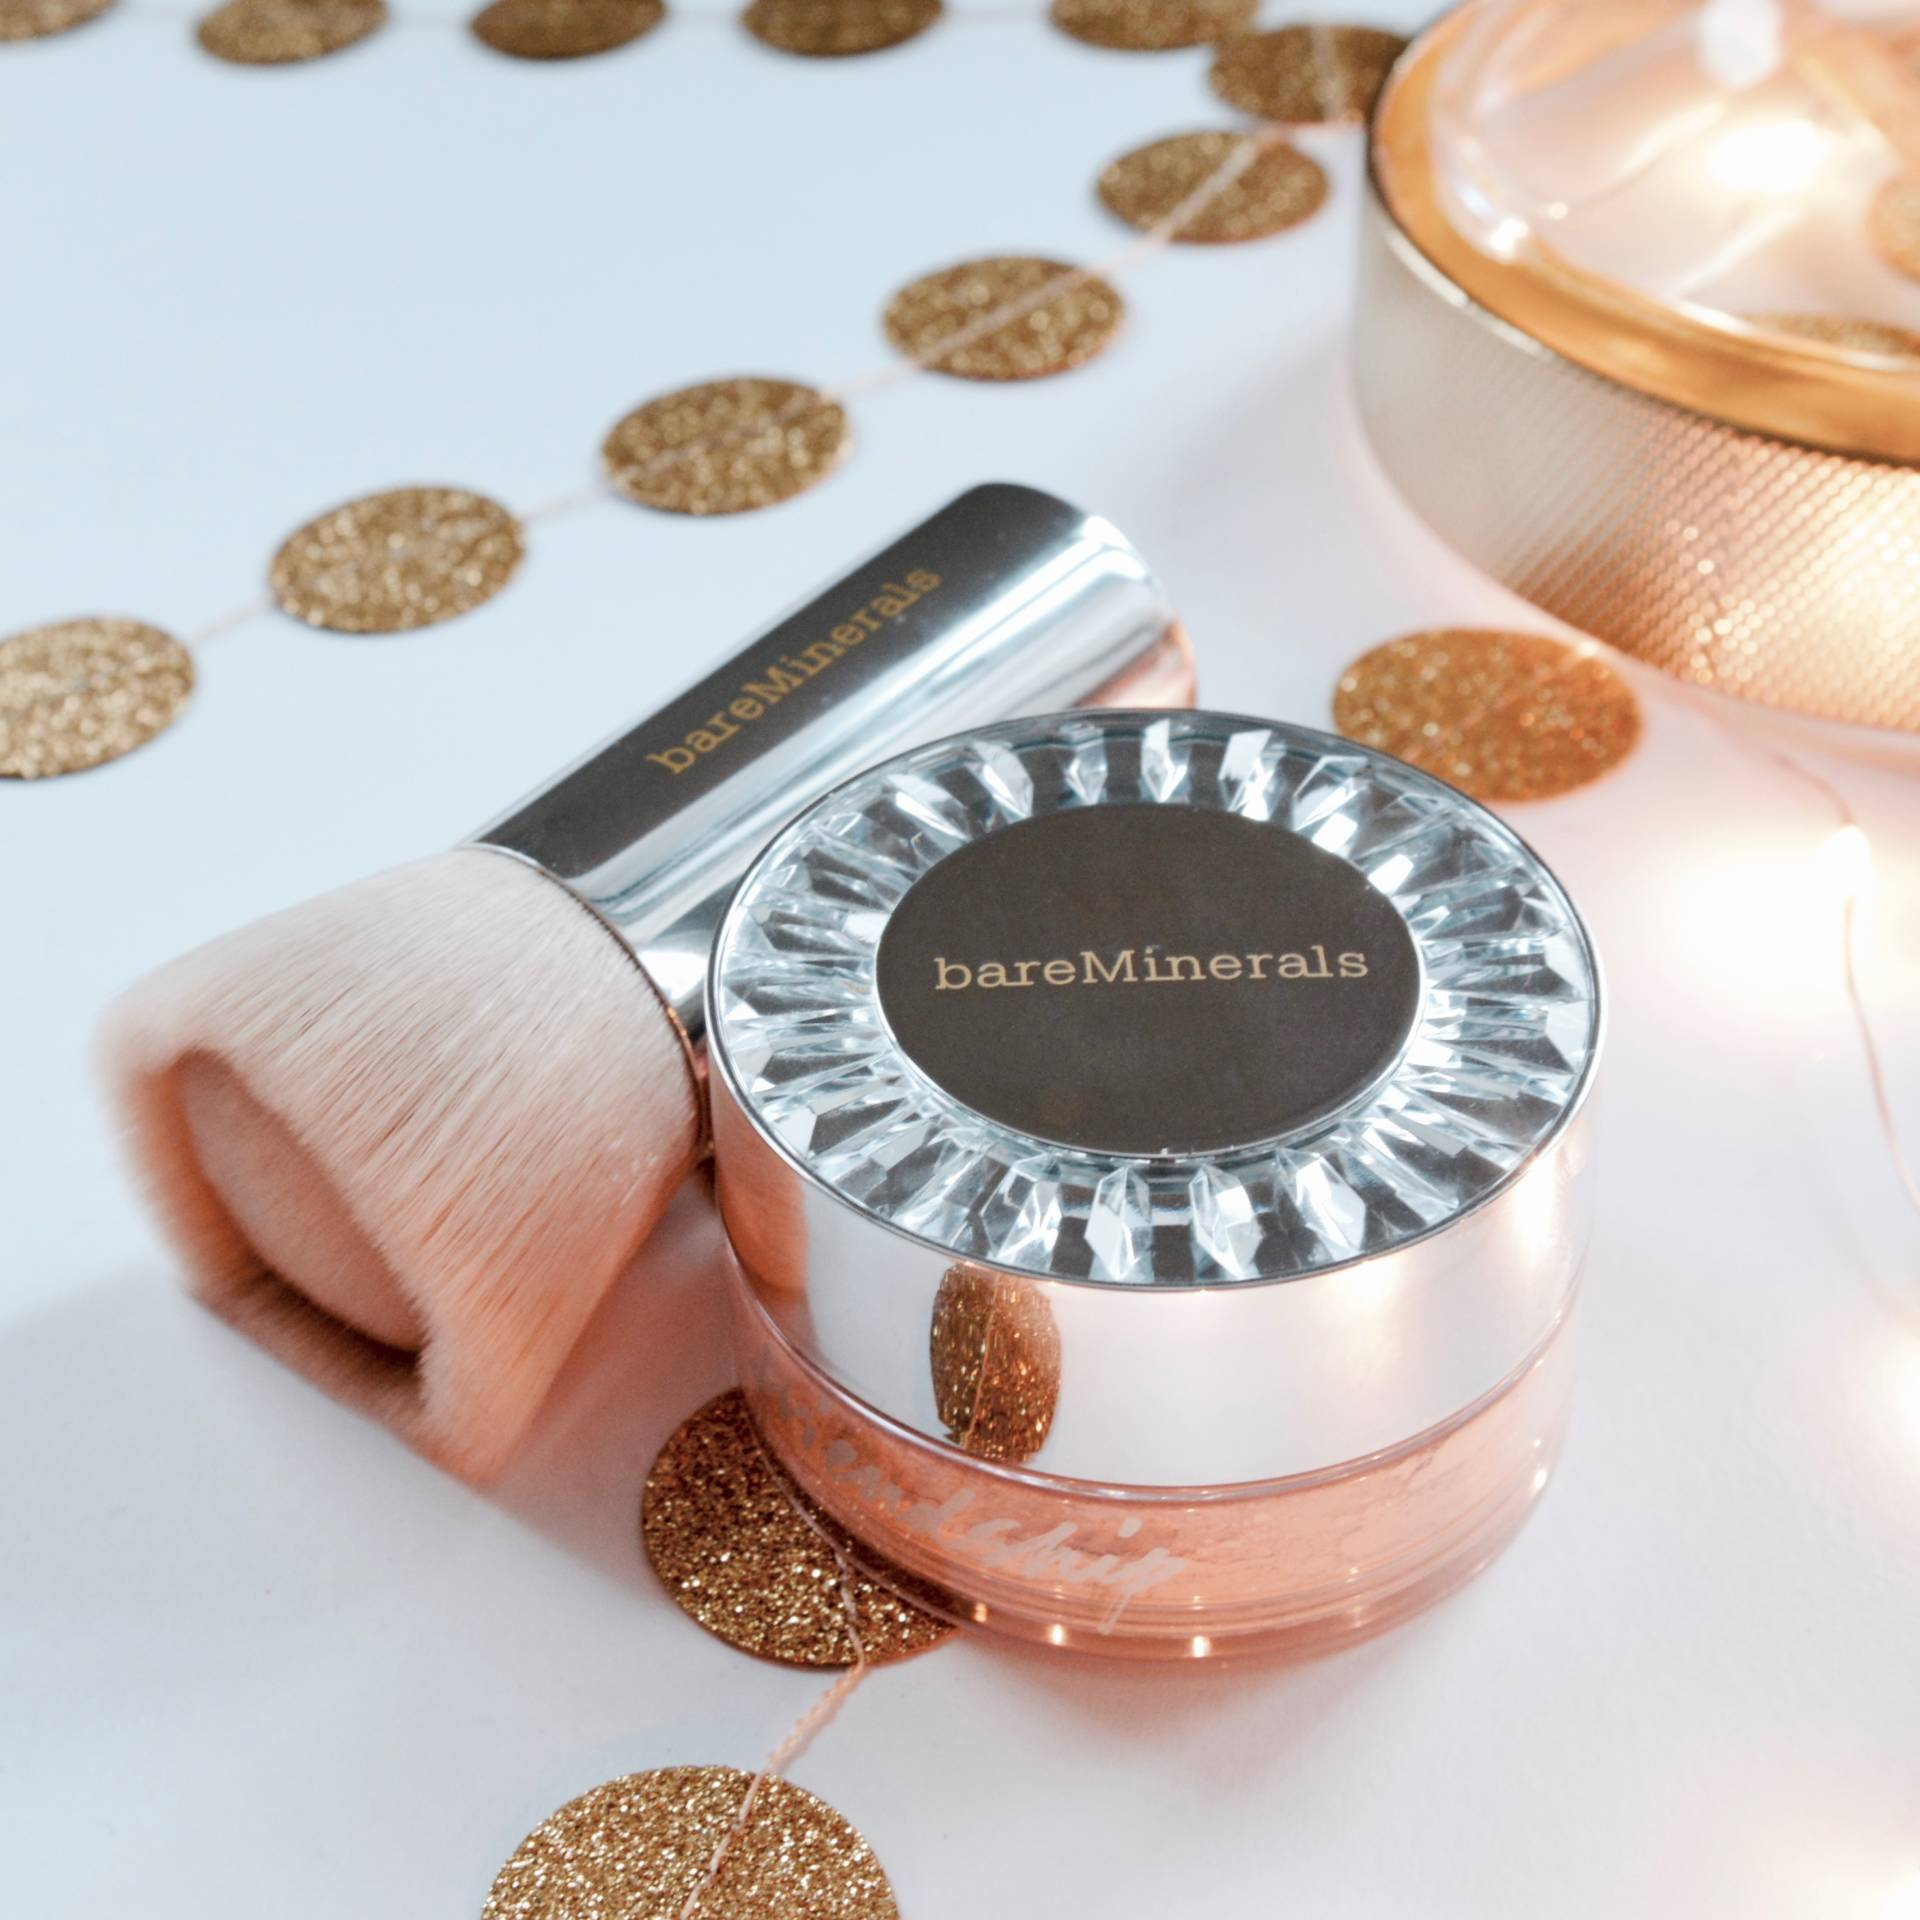 Last Minute Gift Guide: Bare Minerals Limited Edition